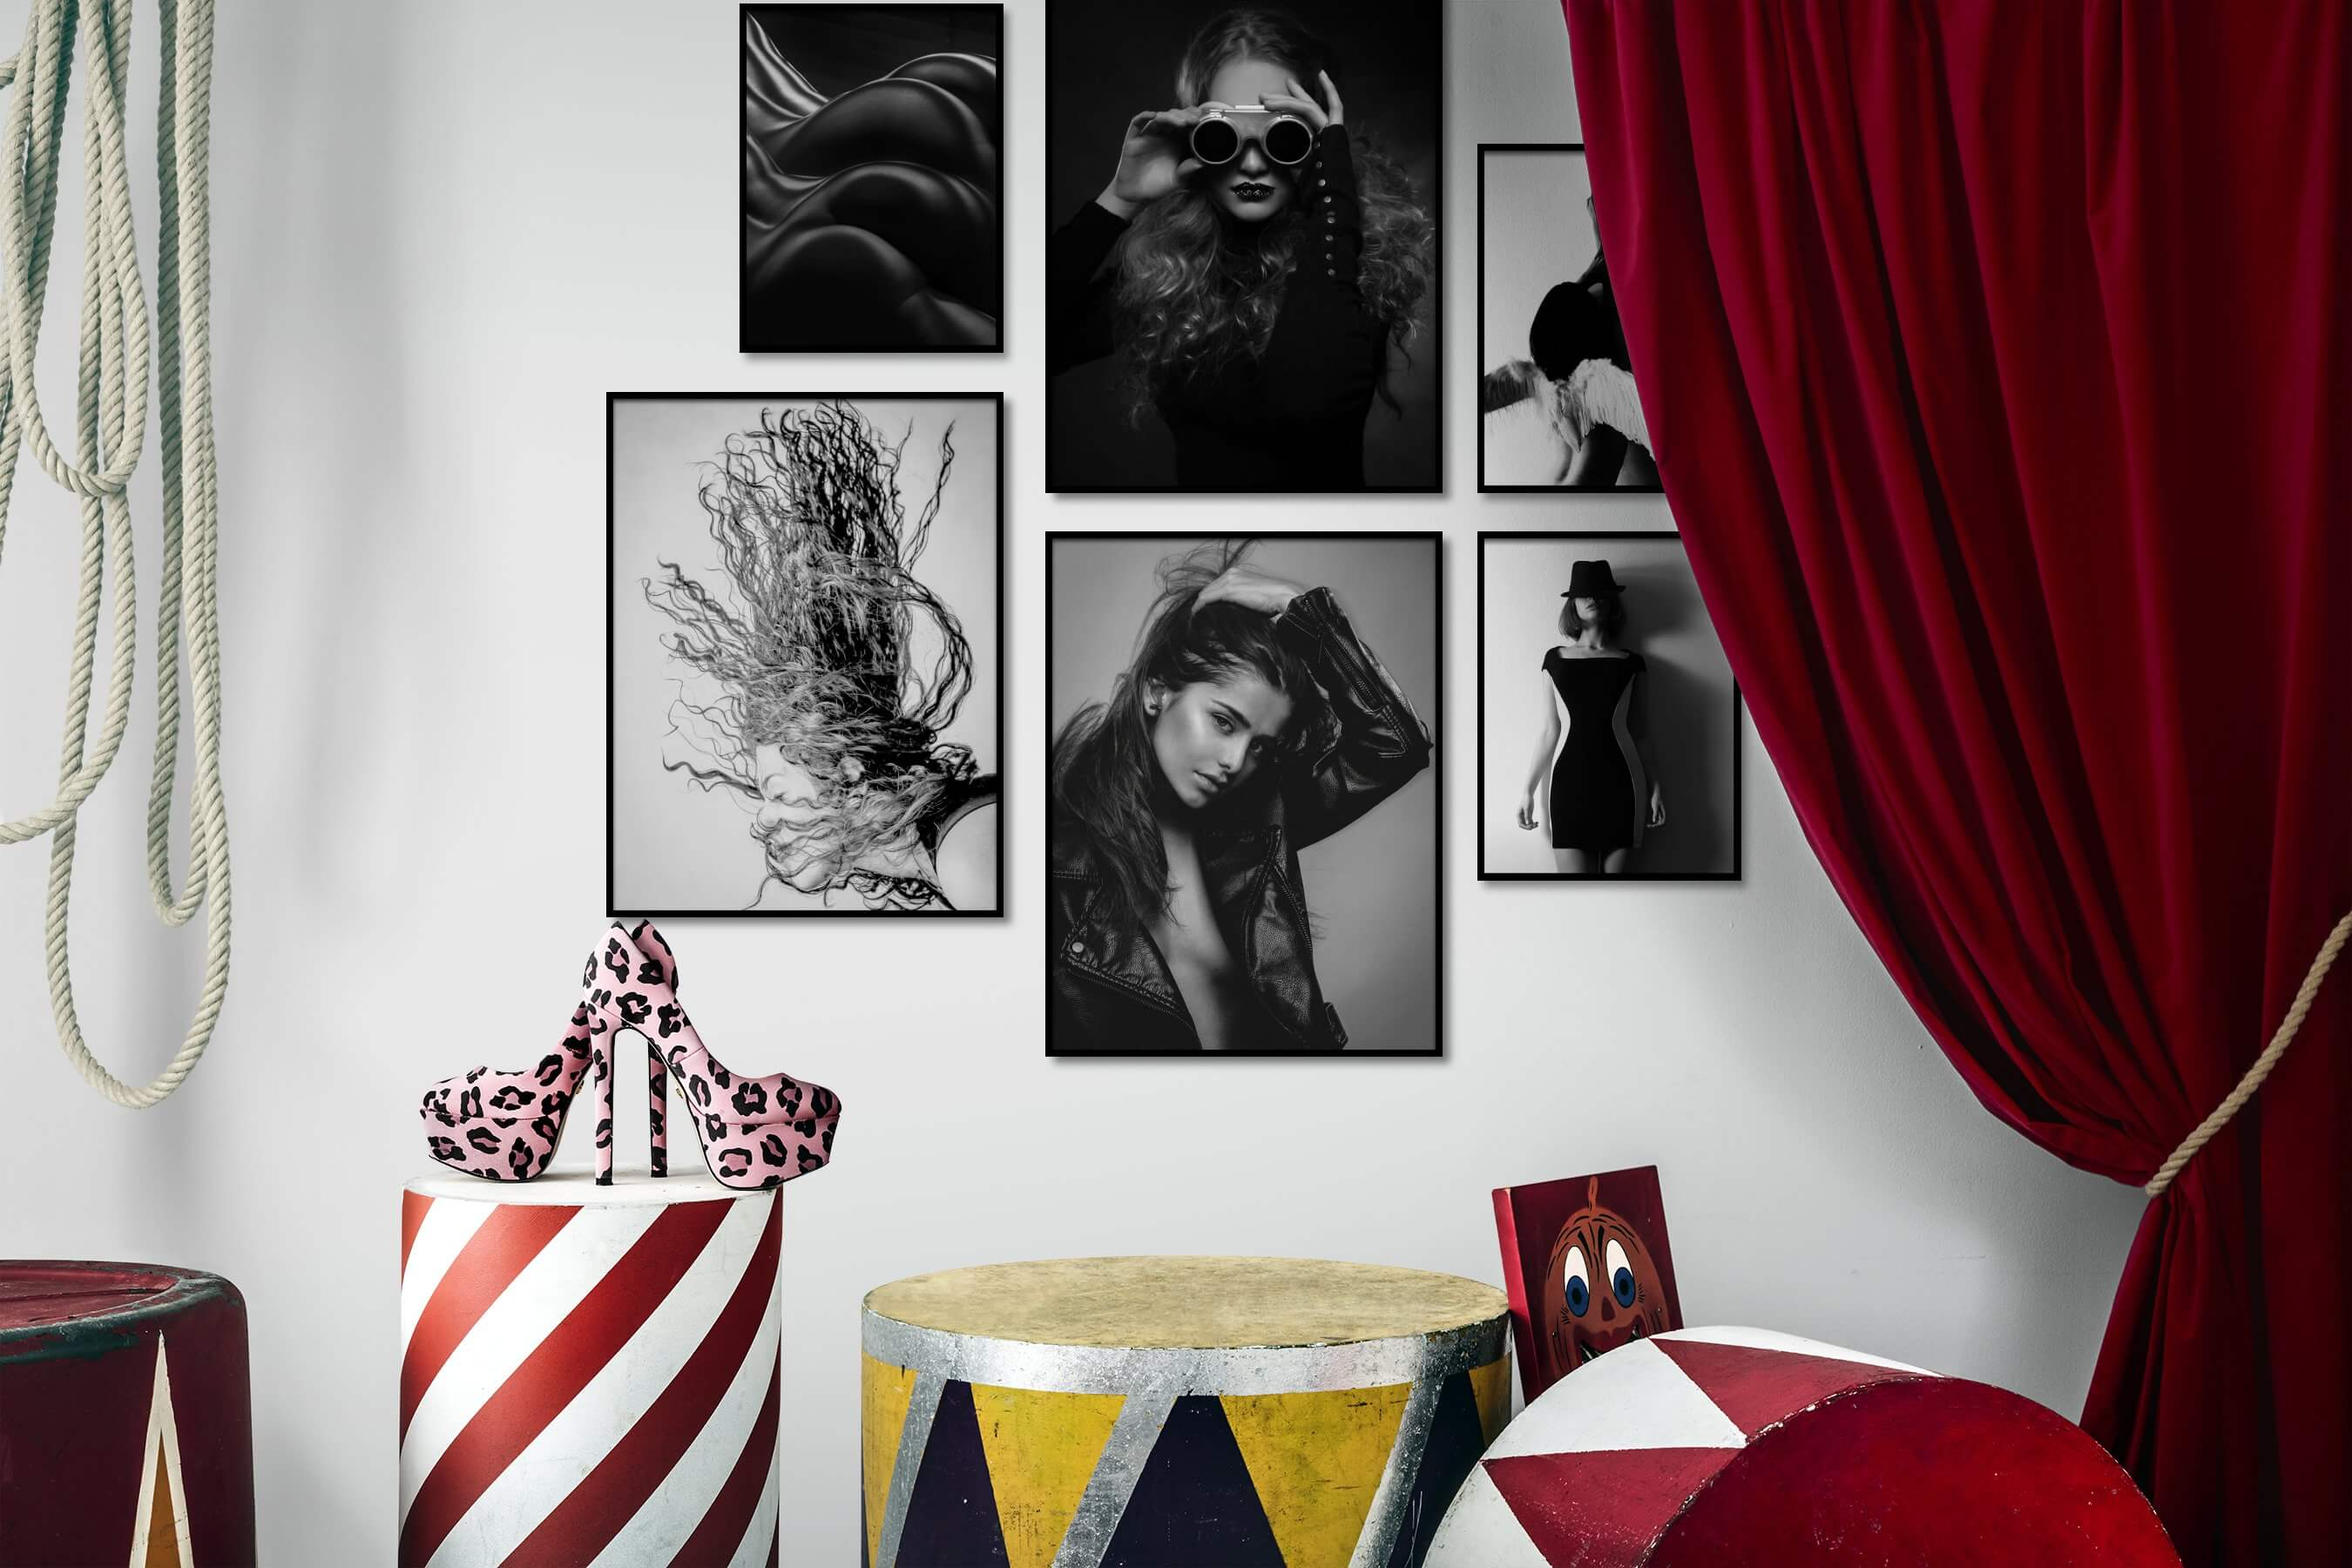 Gallery wall idea with six framed pictures arranged on a wall depicting Fashion & Beauty, Black & White, Dark Tones, and For the Moderate